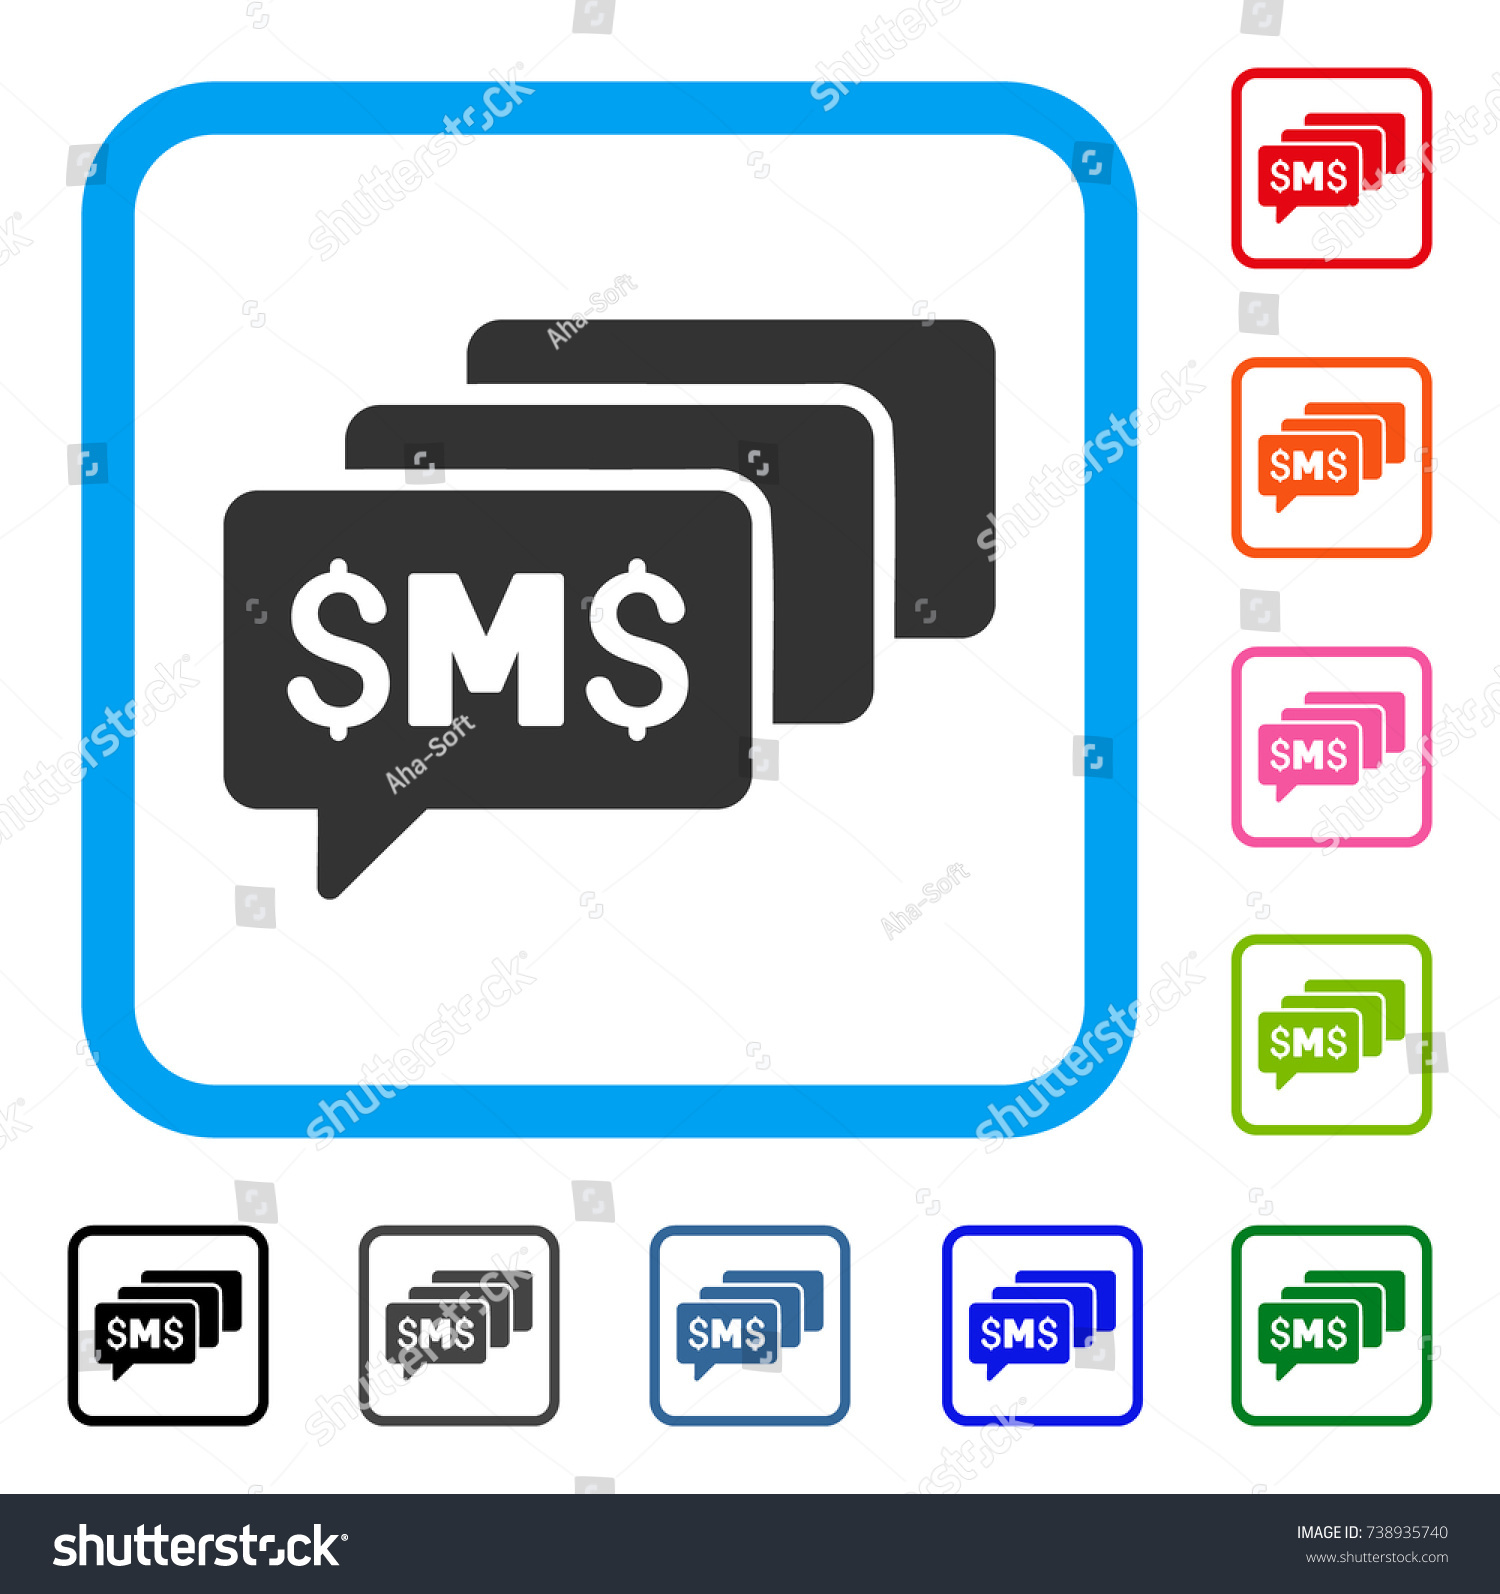 Sms messages icon flat gray iconic stock vector 738935740 sms messages icon flat gray iconic symbol in a light blue rounded square black biocorpaavc Images